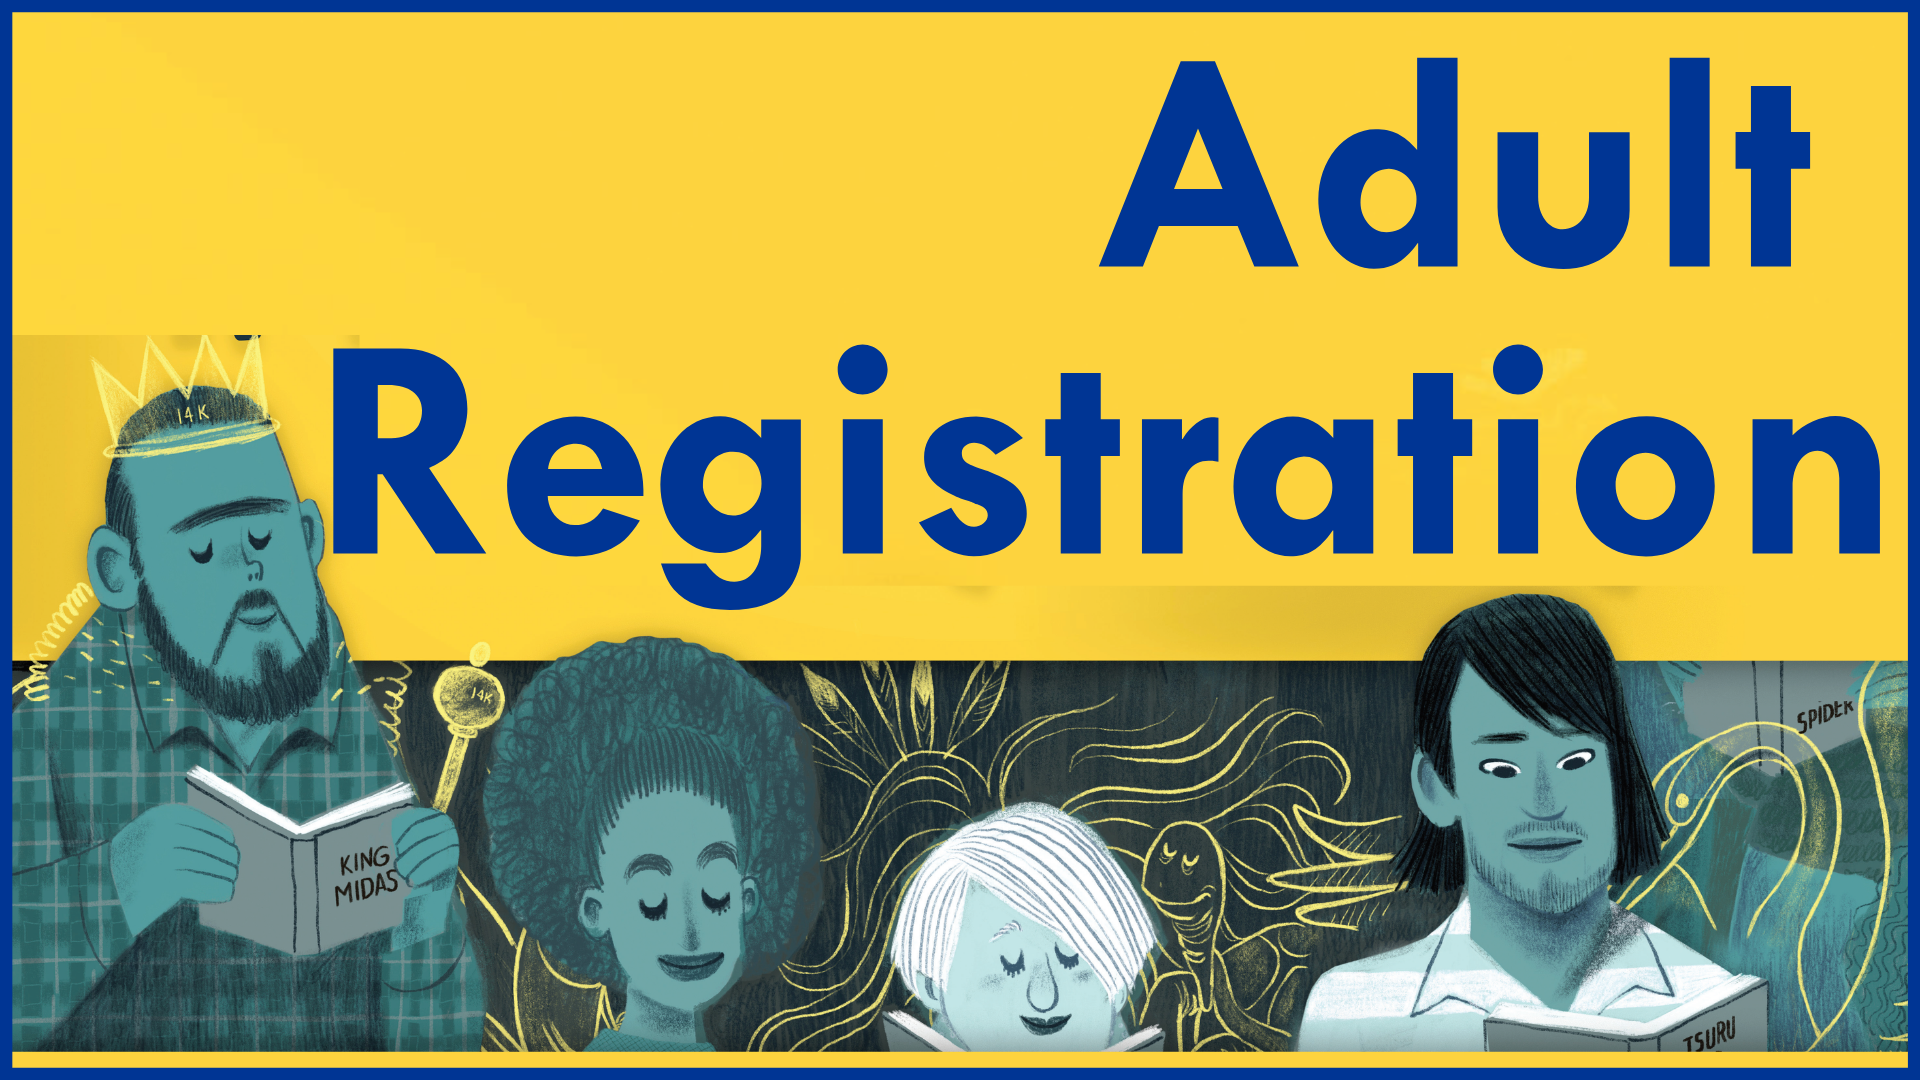 illustration of folks reading, Adult Registration